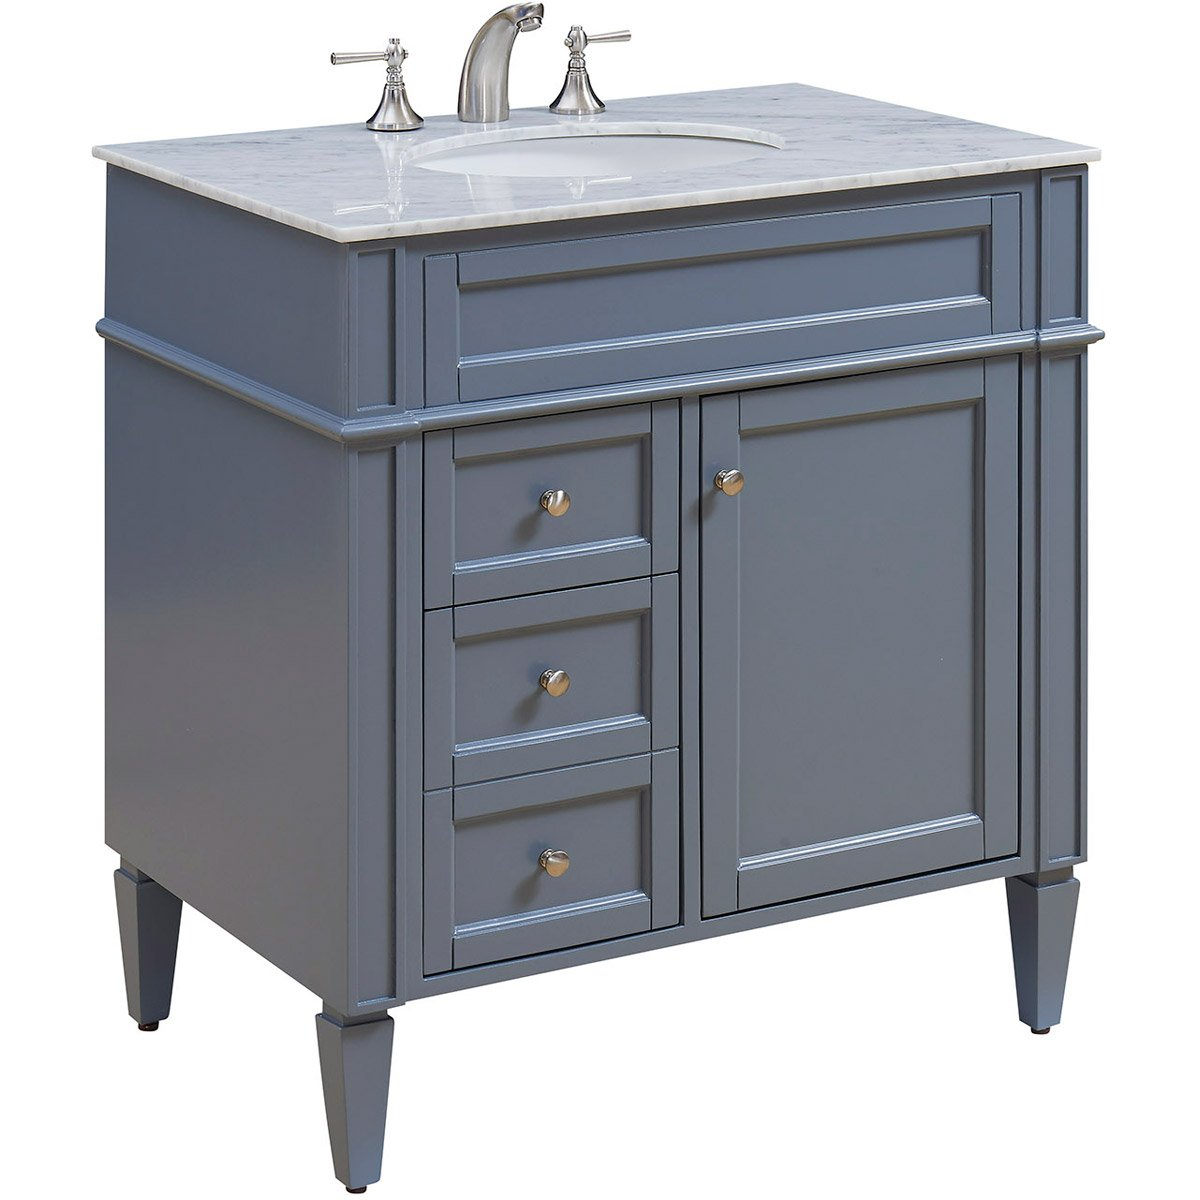 Park Ave 32 X 35 2 Drawer 1 Door Vanity Cabinet - Grey Finish (Vf-1025) Vanity